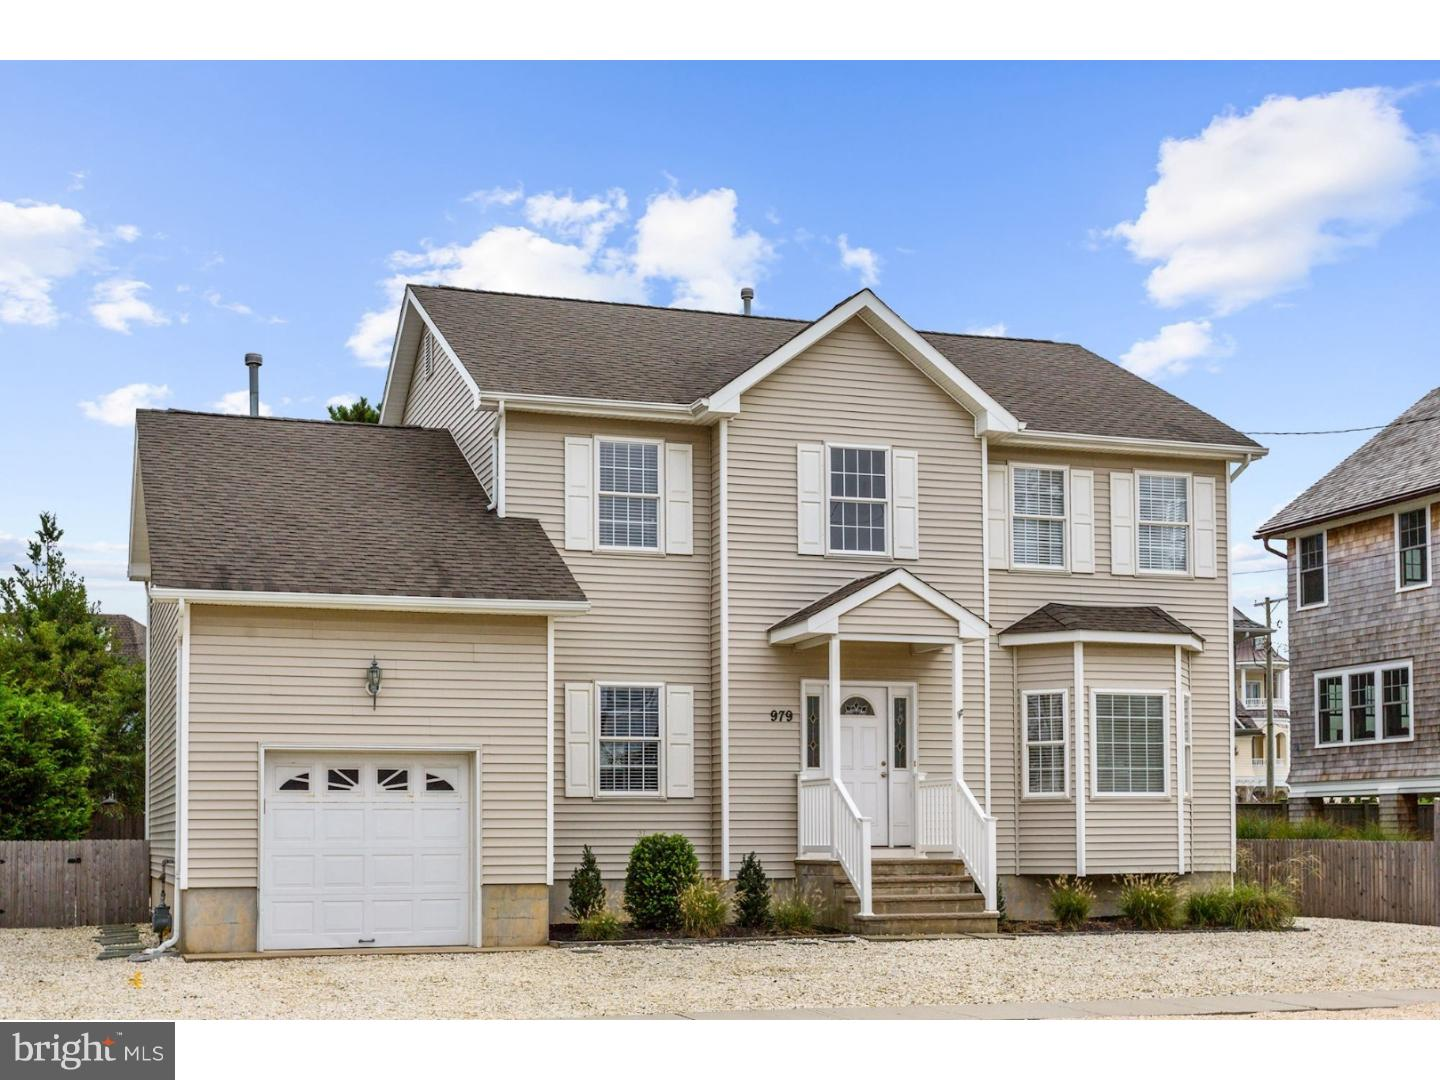 Single Family Home for Sale at 979 OCEAN Avenue Mantoloking, New Jersey 08738 United States